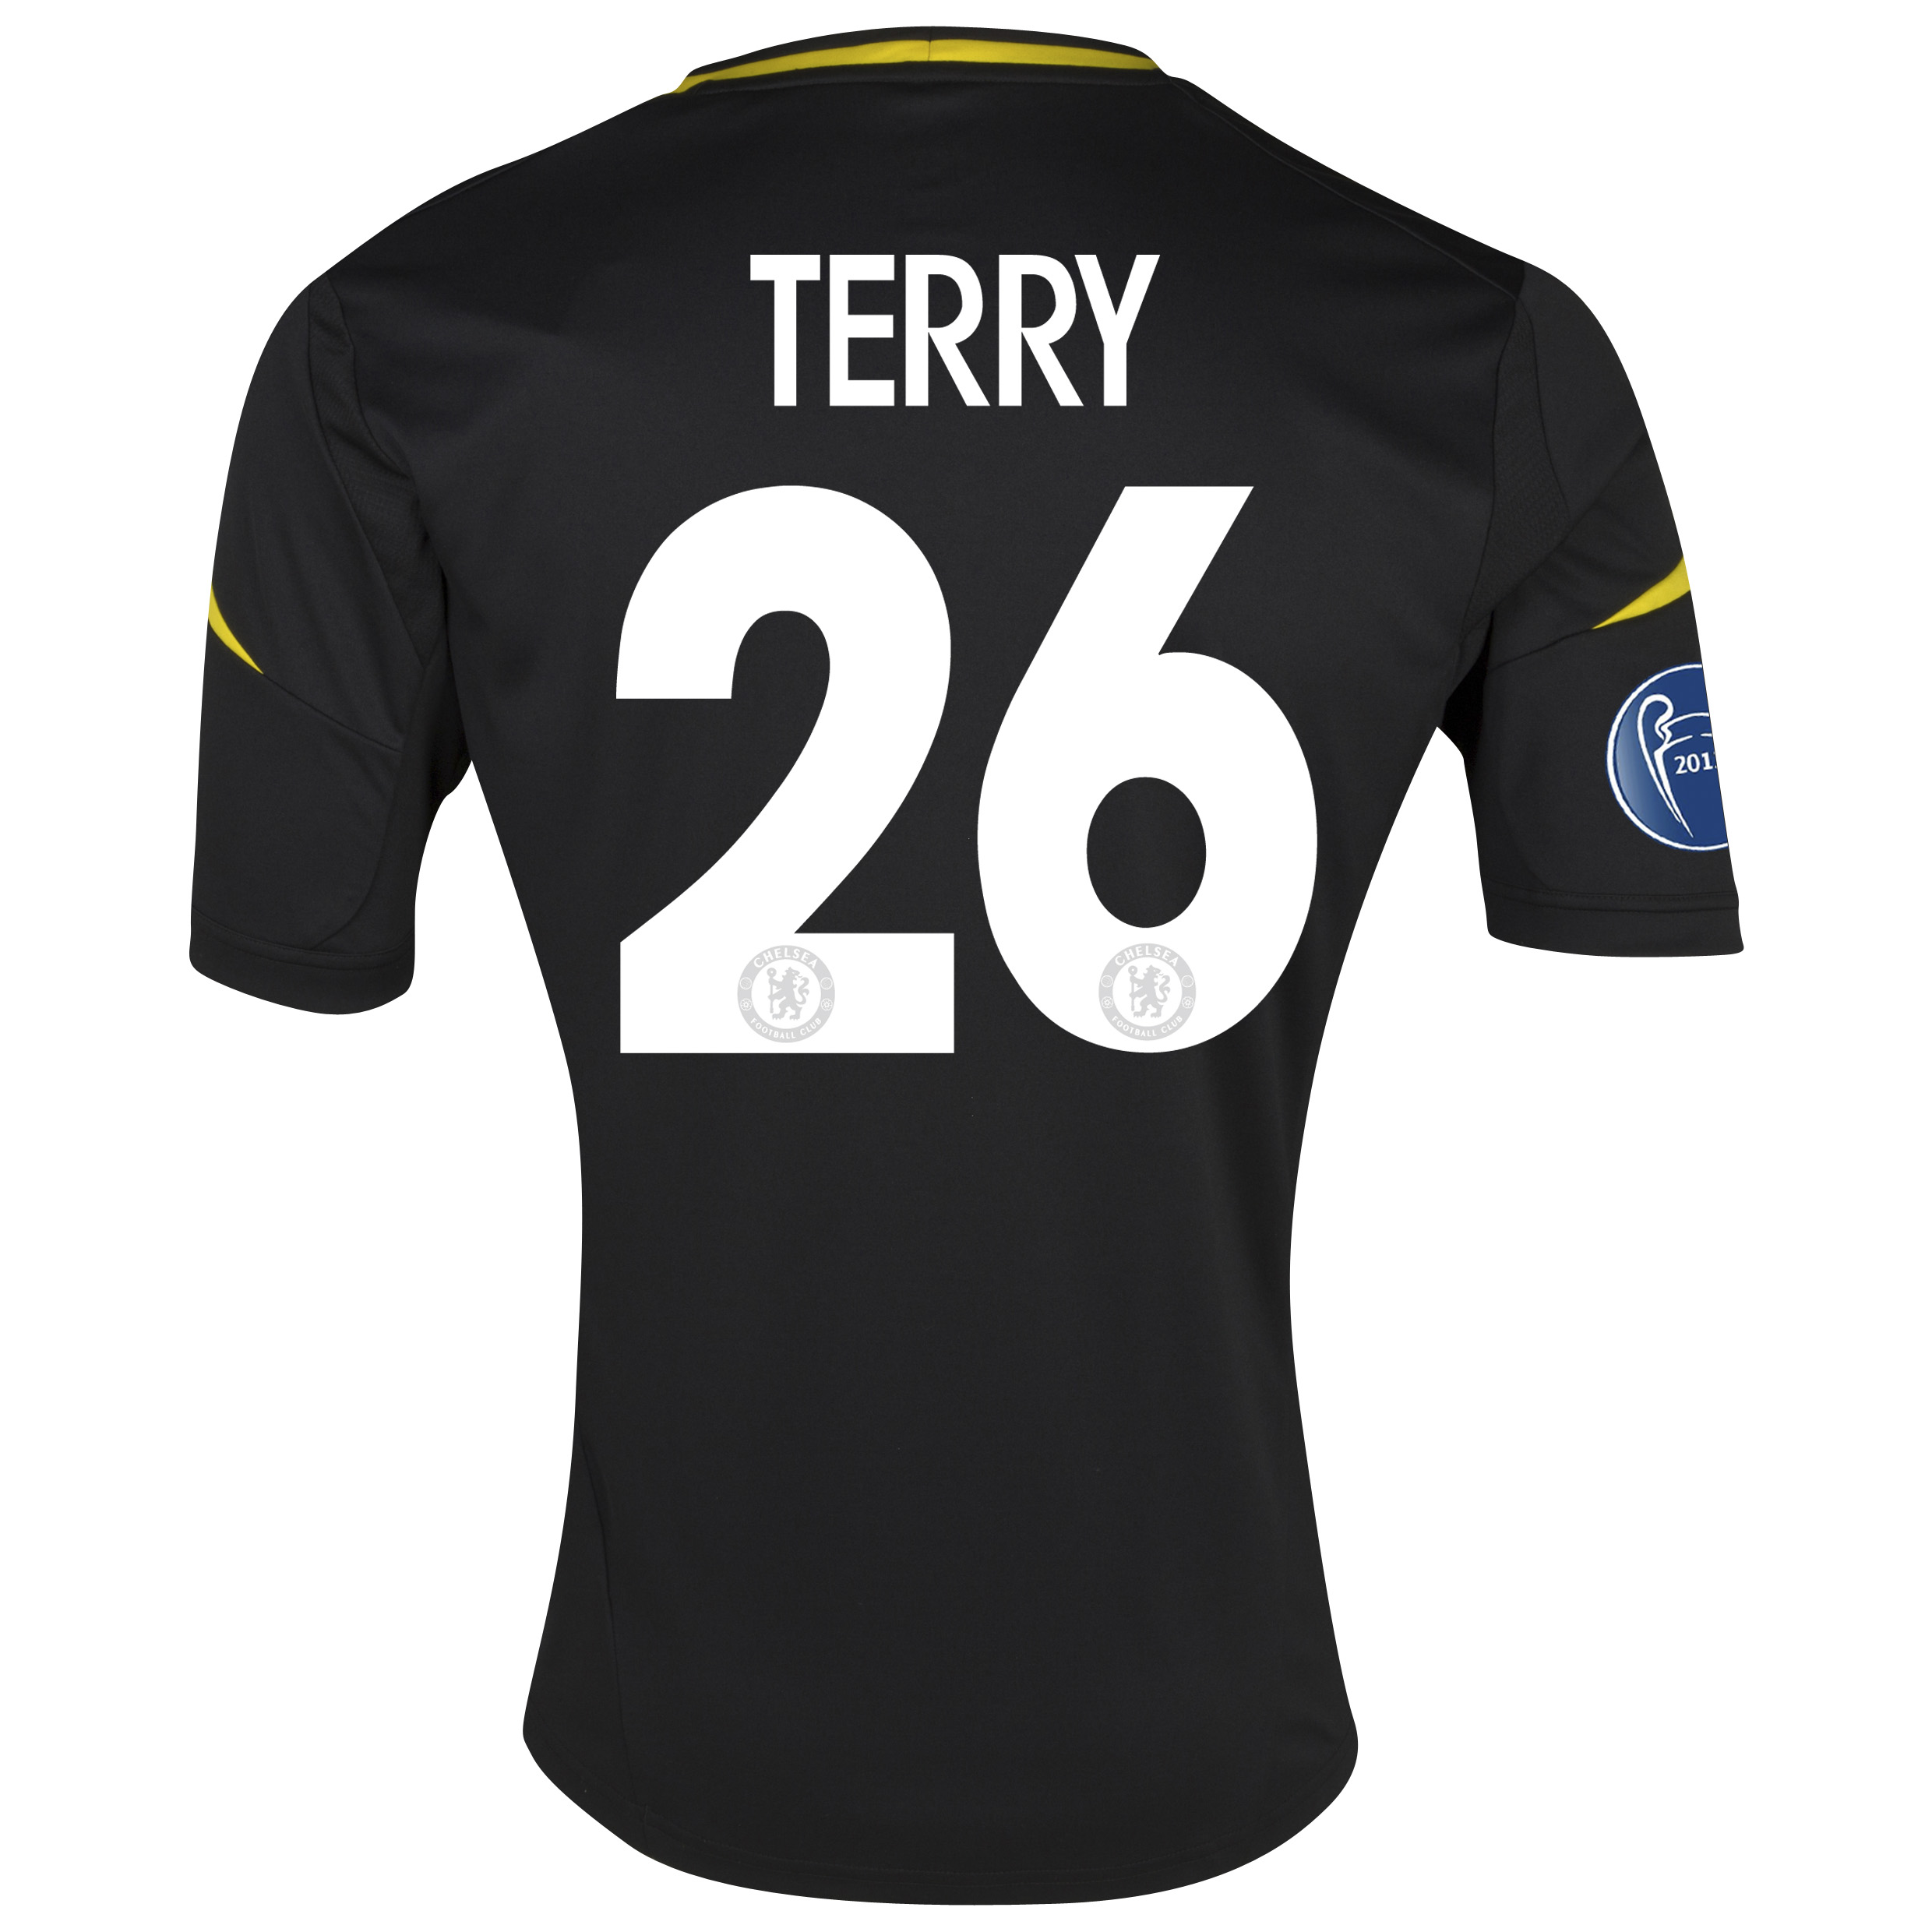 Chelsea UEFA Champions League Third Shirt 2012/13 - Youths with Terry 26 printing